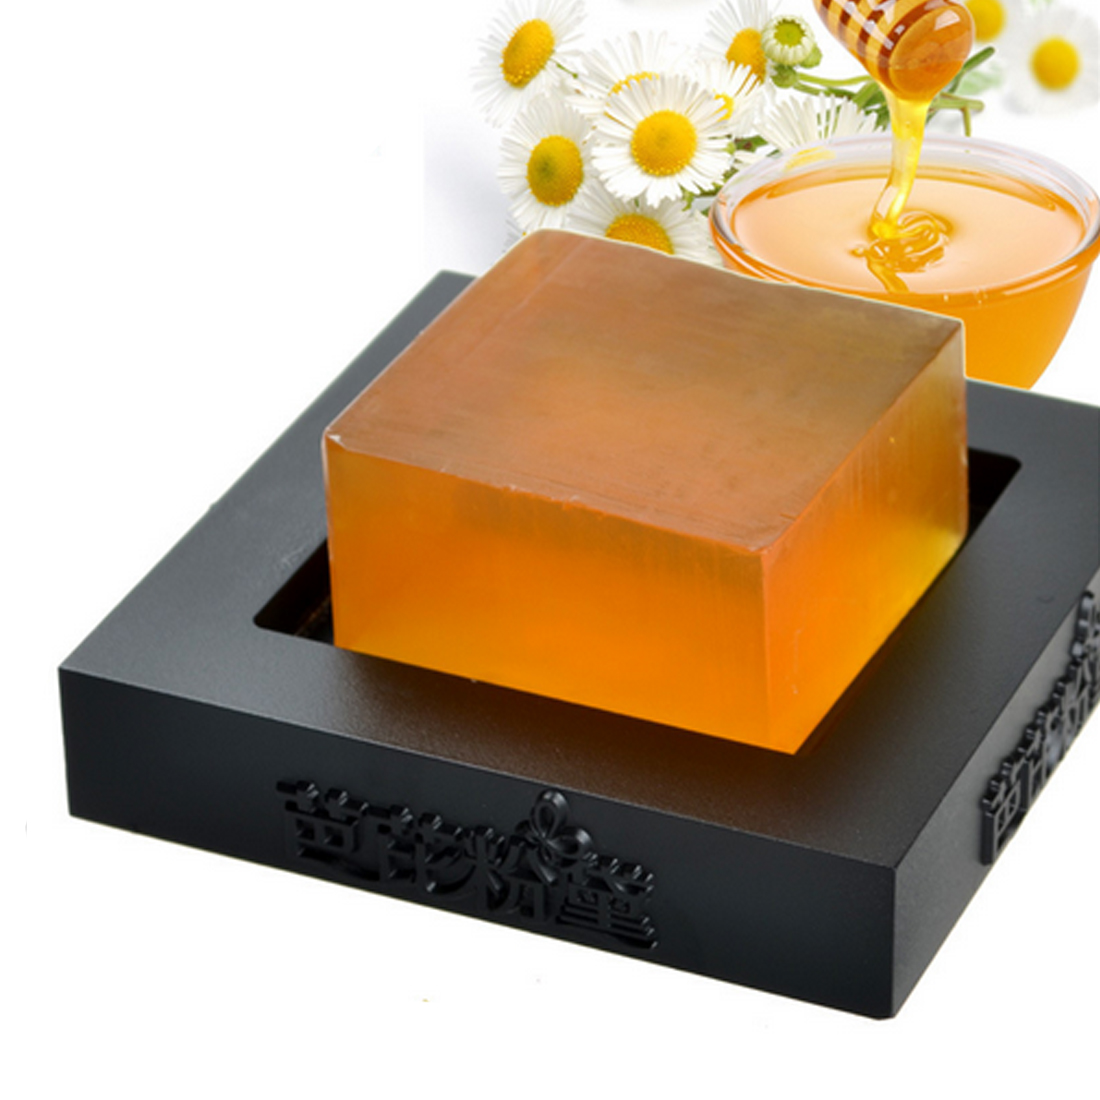 Top Quality 100% HandMade Whitening Peeling Glutathione Arbutin Honey Kojic Acid Soap 100g